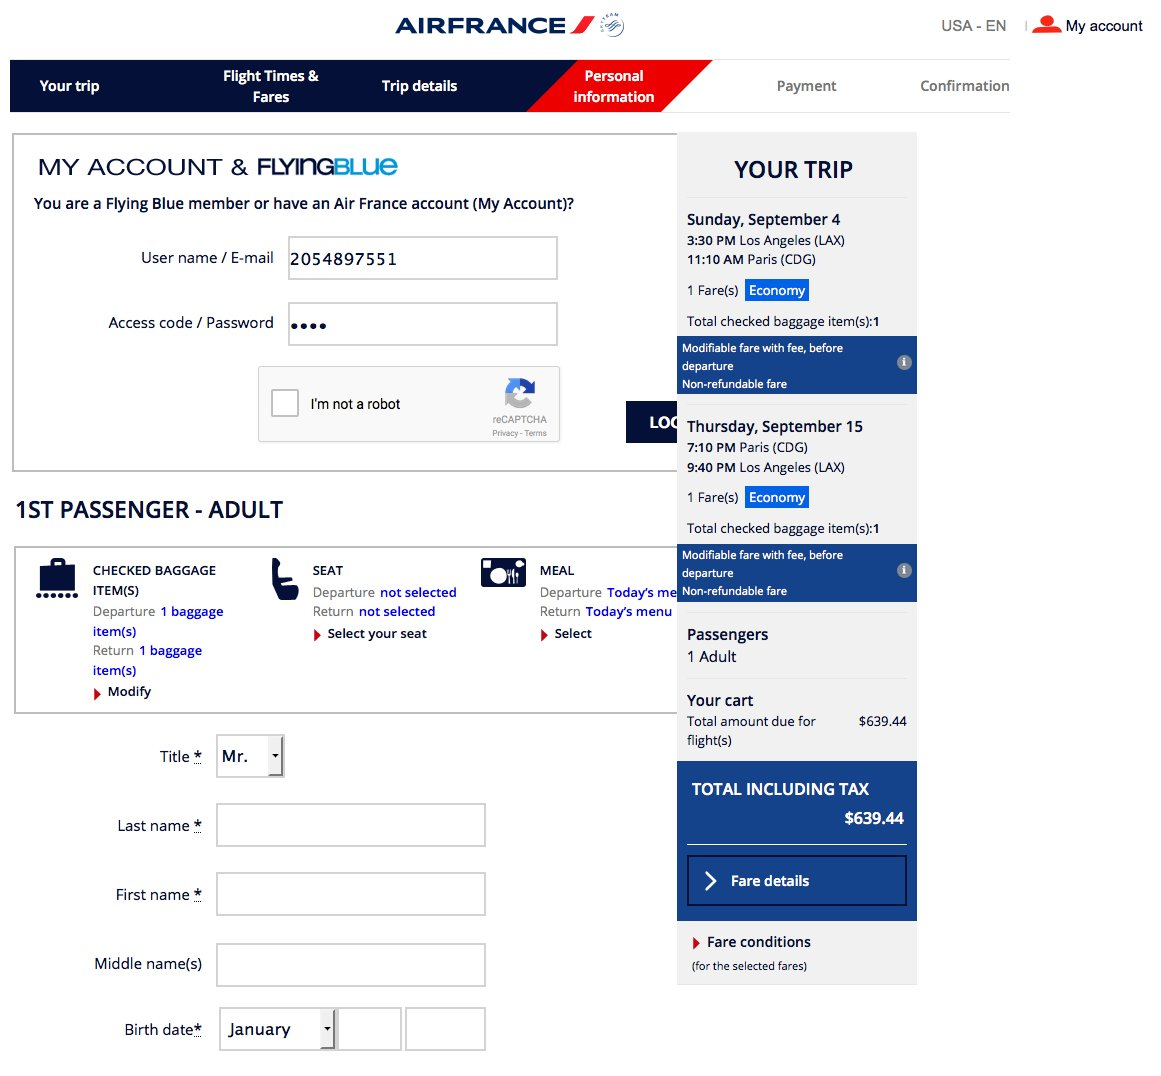 RT @airfarewatchdog: Los Angeles LAX to Paris CDG $640 nonstop on @AirFranceUS